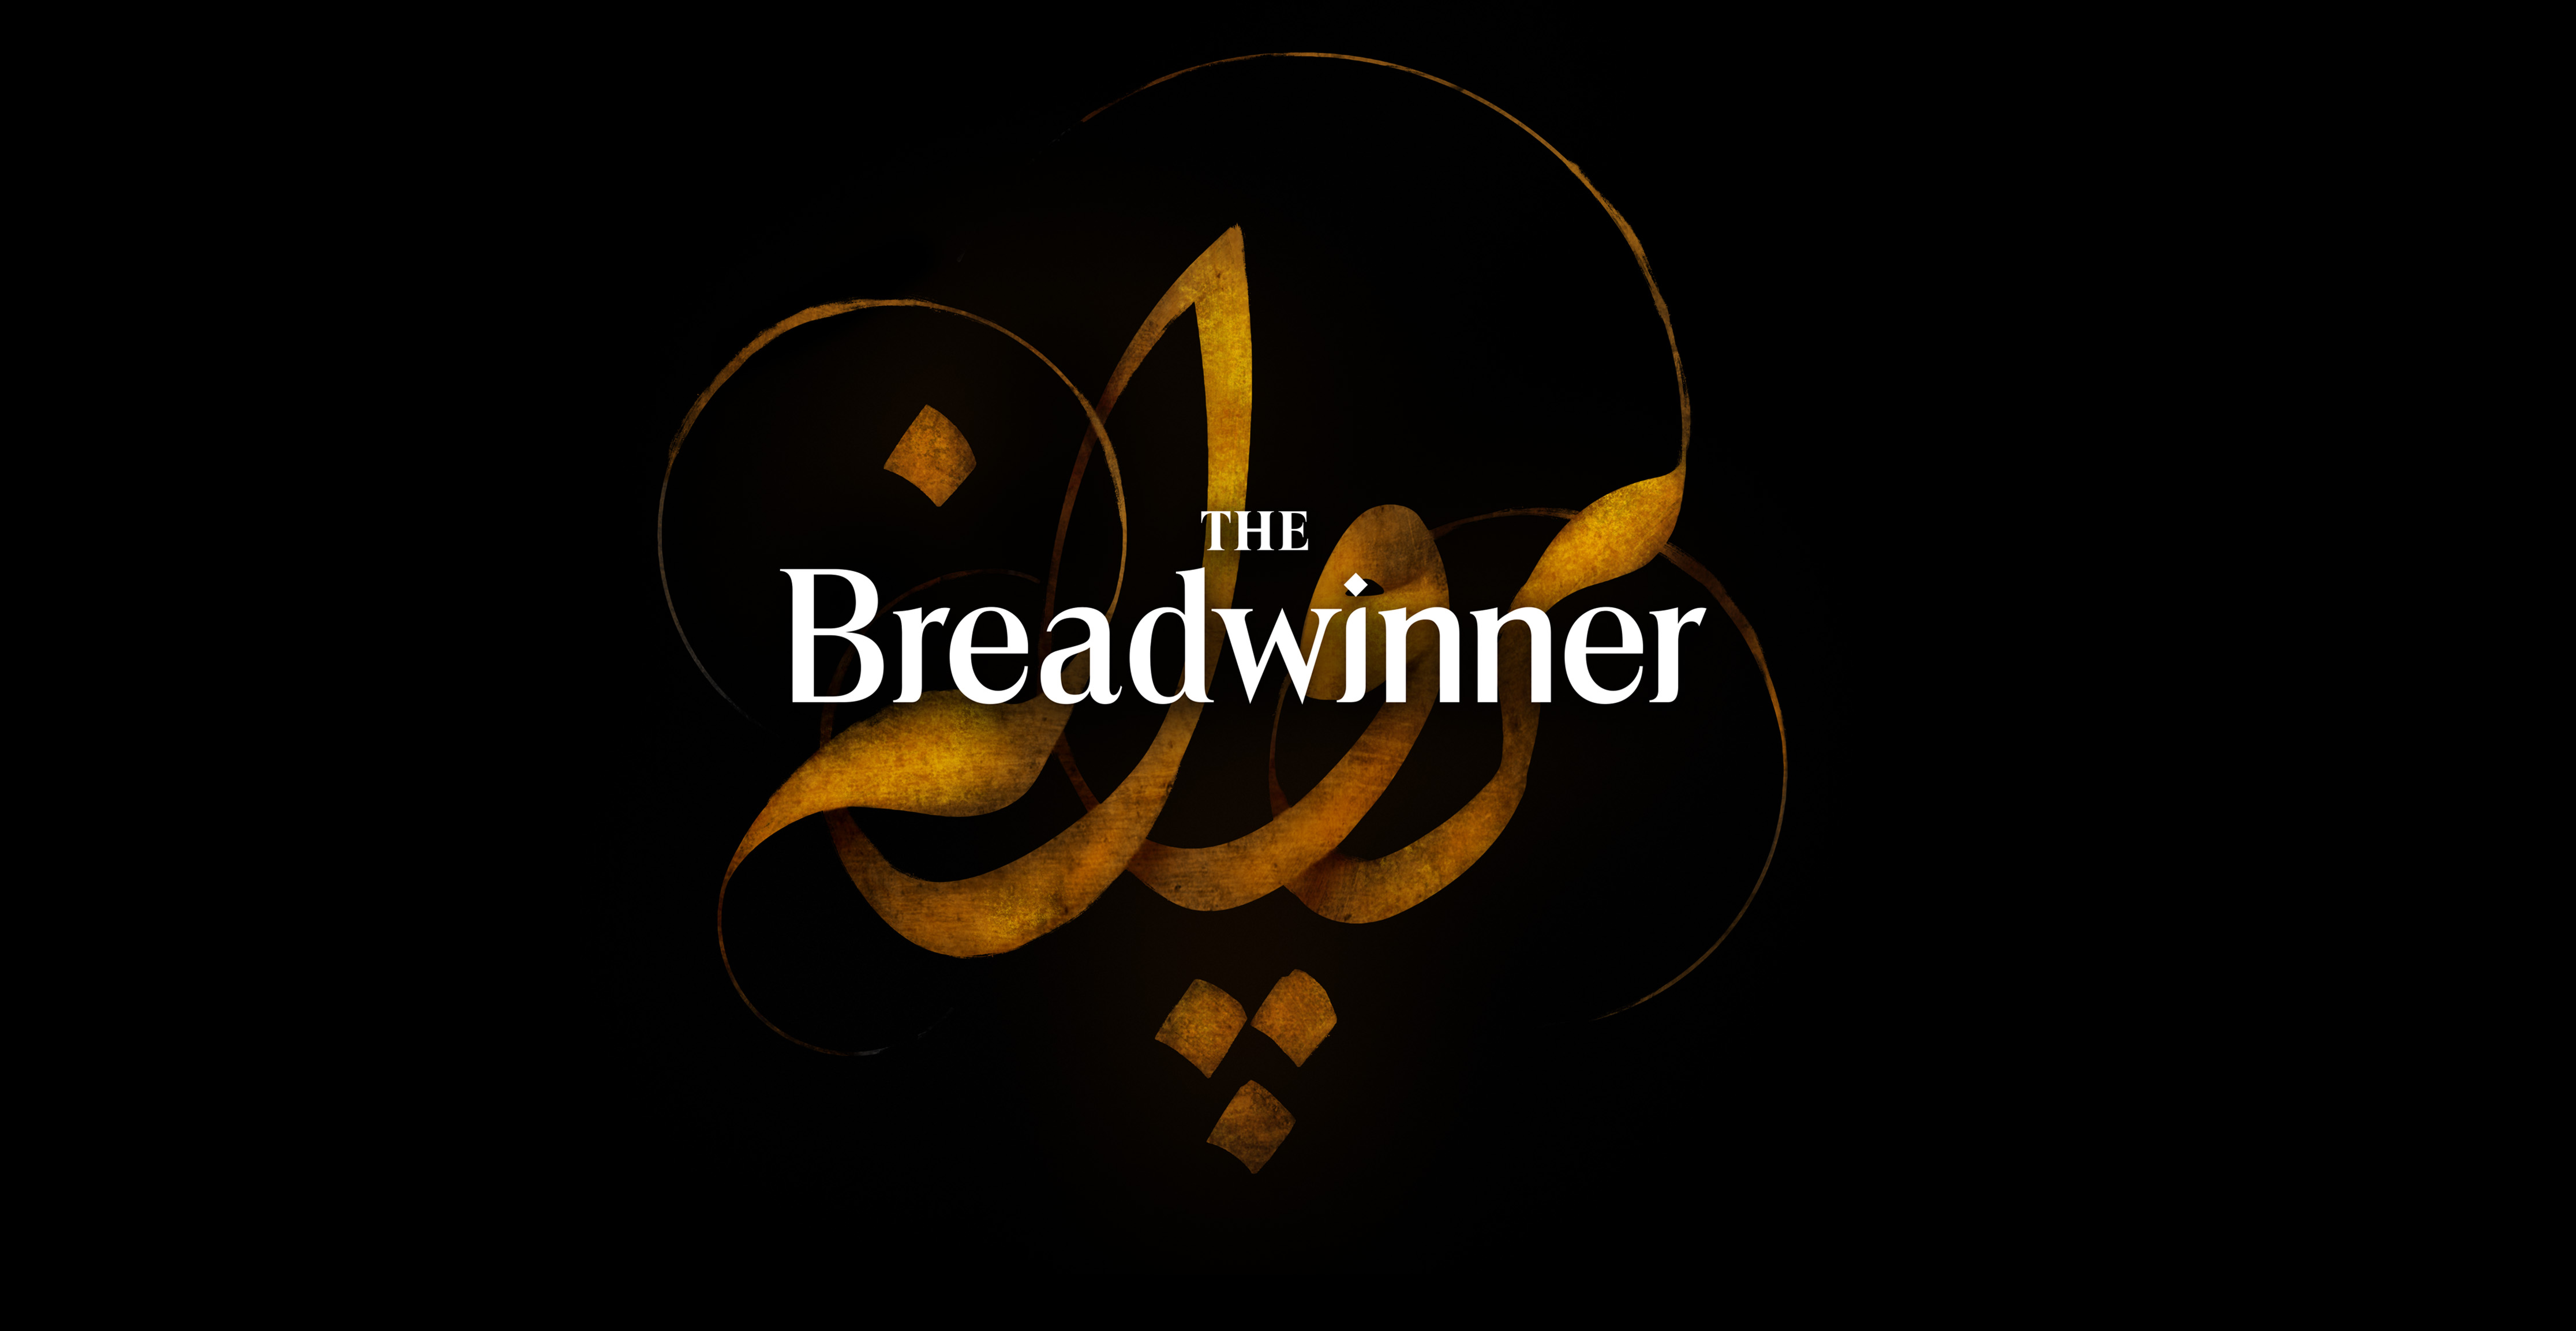 The Breadwinner premiere